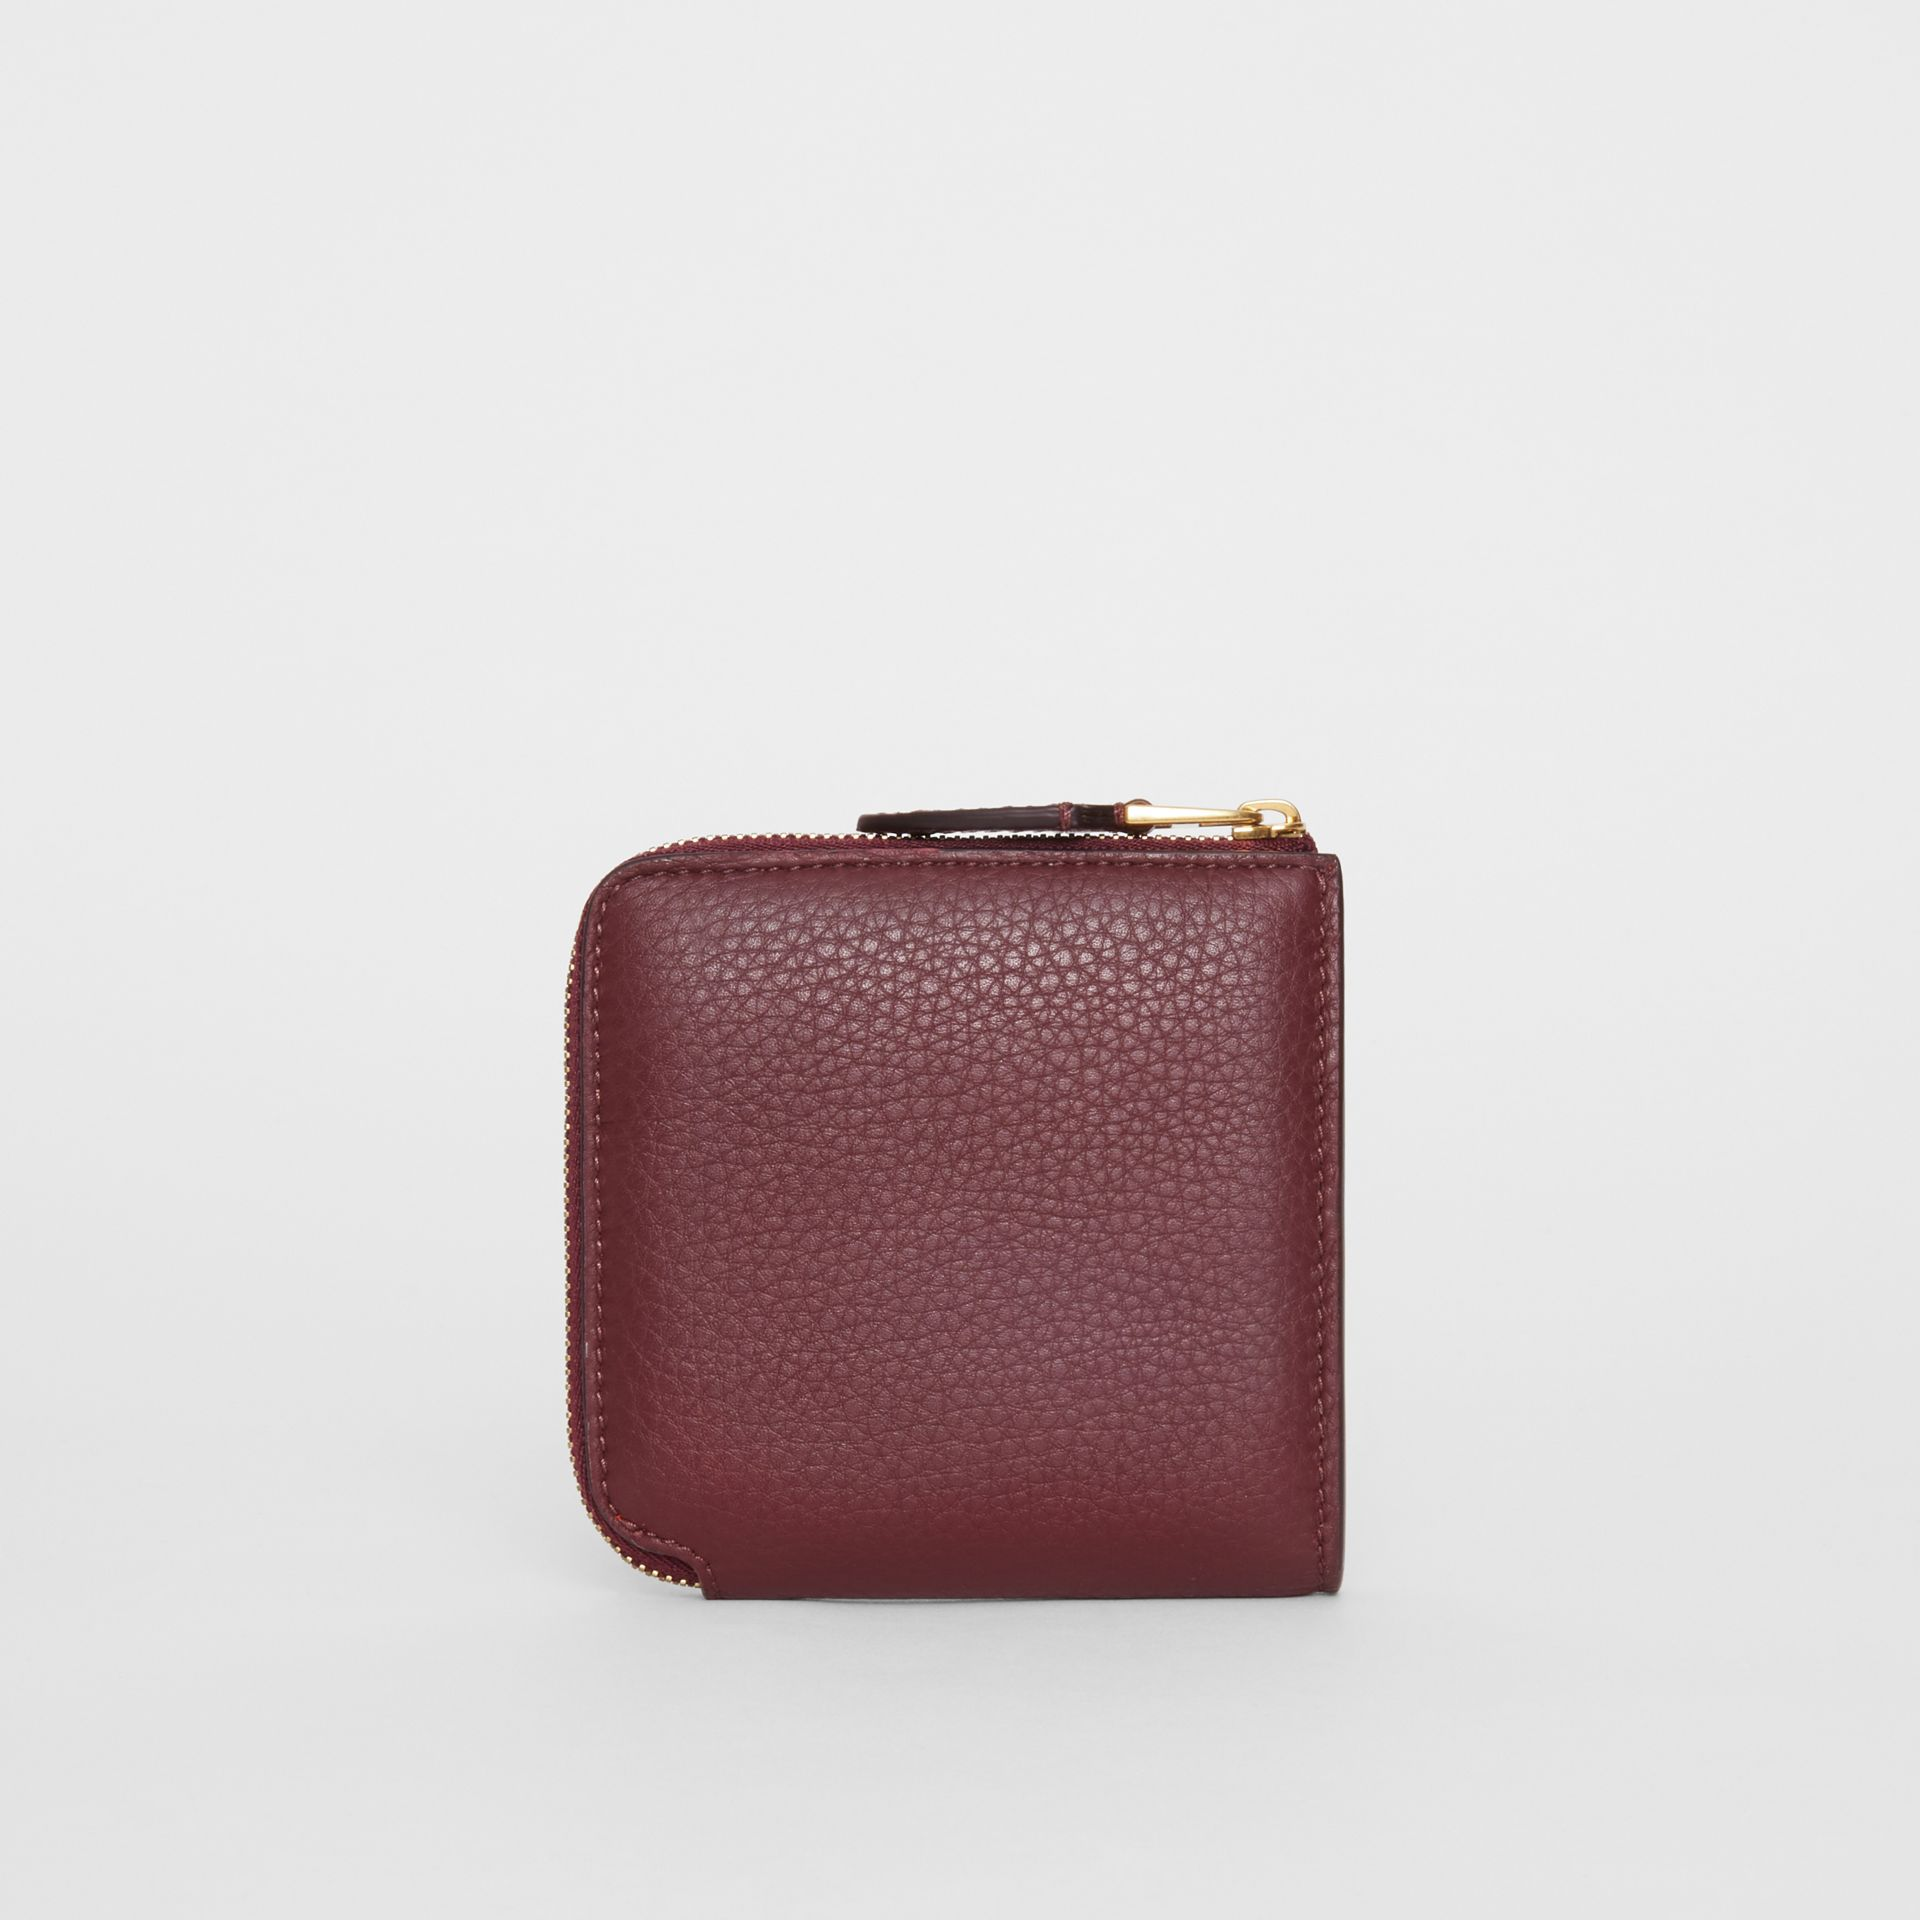 Grainy Leather Square Ziparound Wallet in Deep Claret - Women | Burberry United Kingdom - gallery image 5